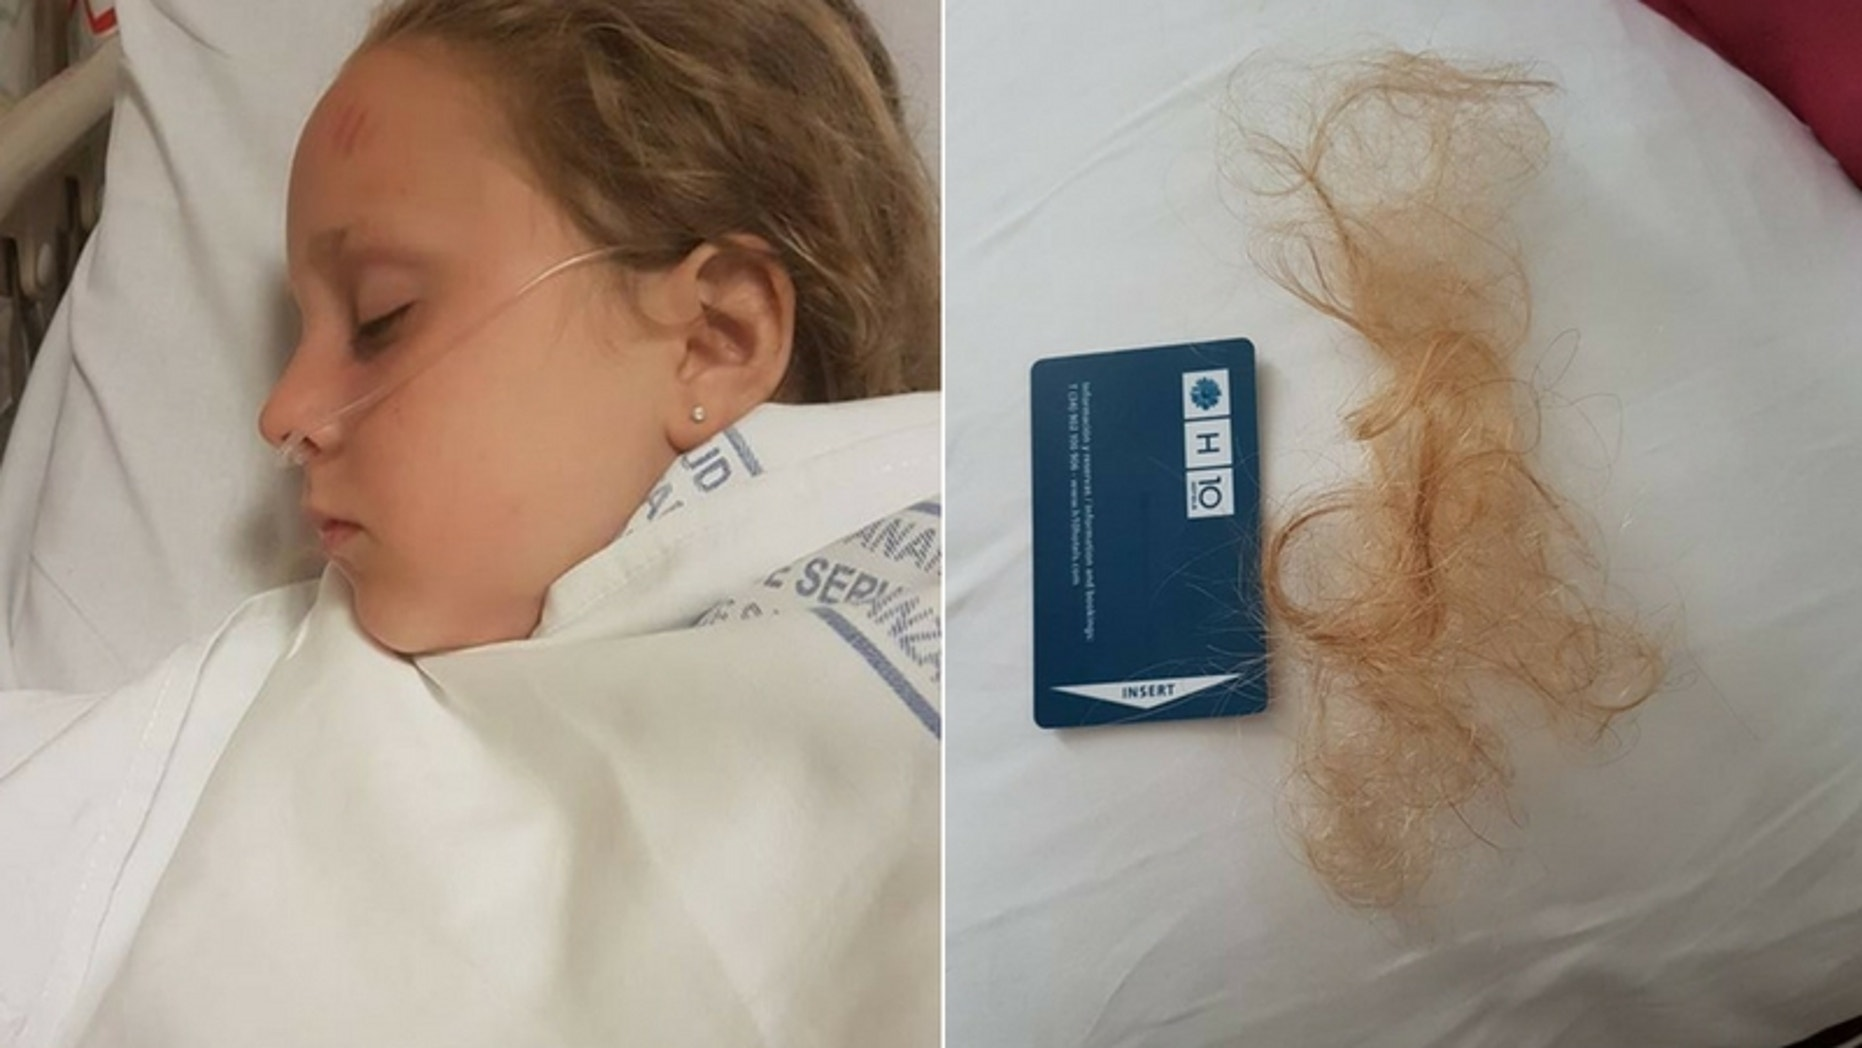 The Morgan family were vacationing in Lanzarote when the pool filter sucked the girl's hair in underwater. (Alex Morgan/Facebook)